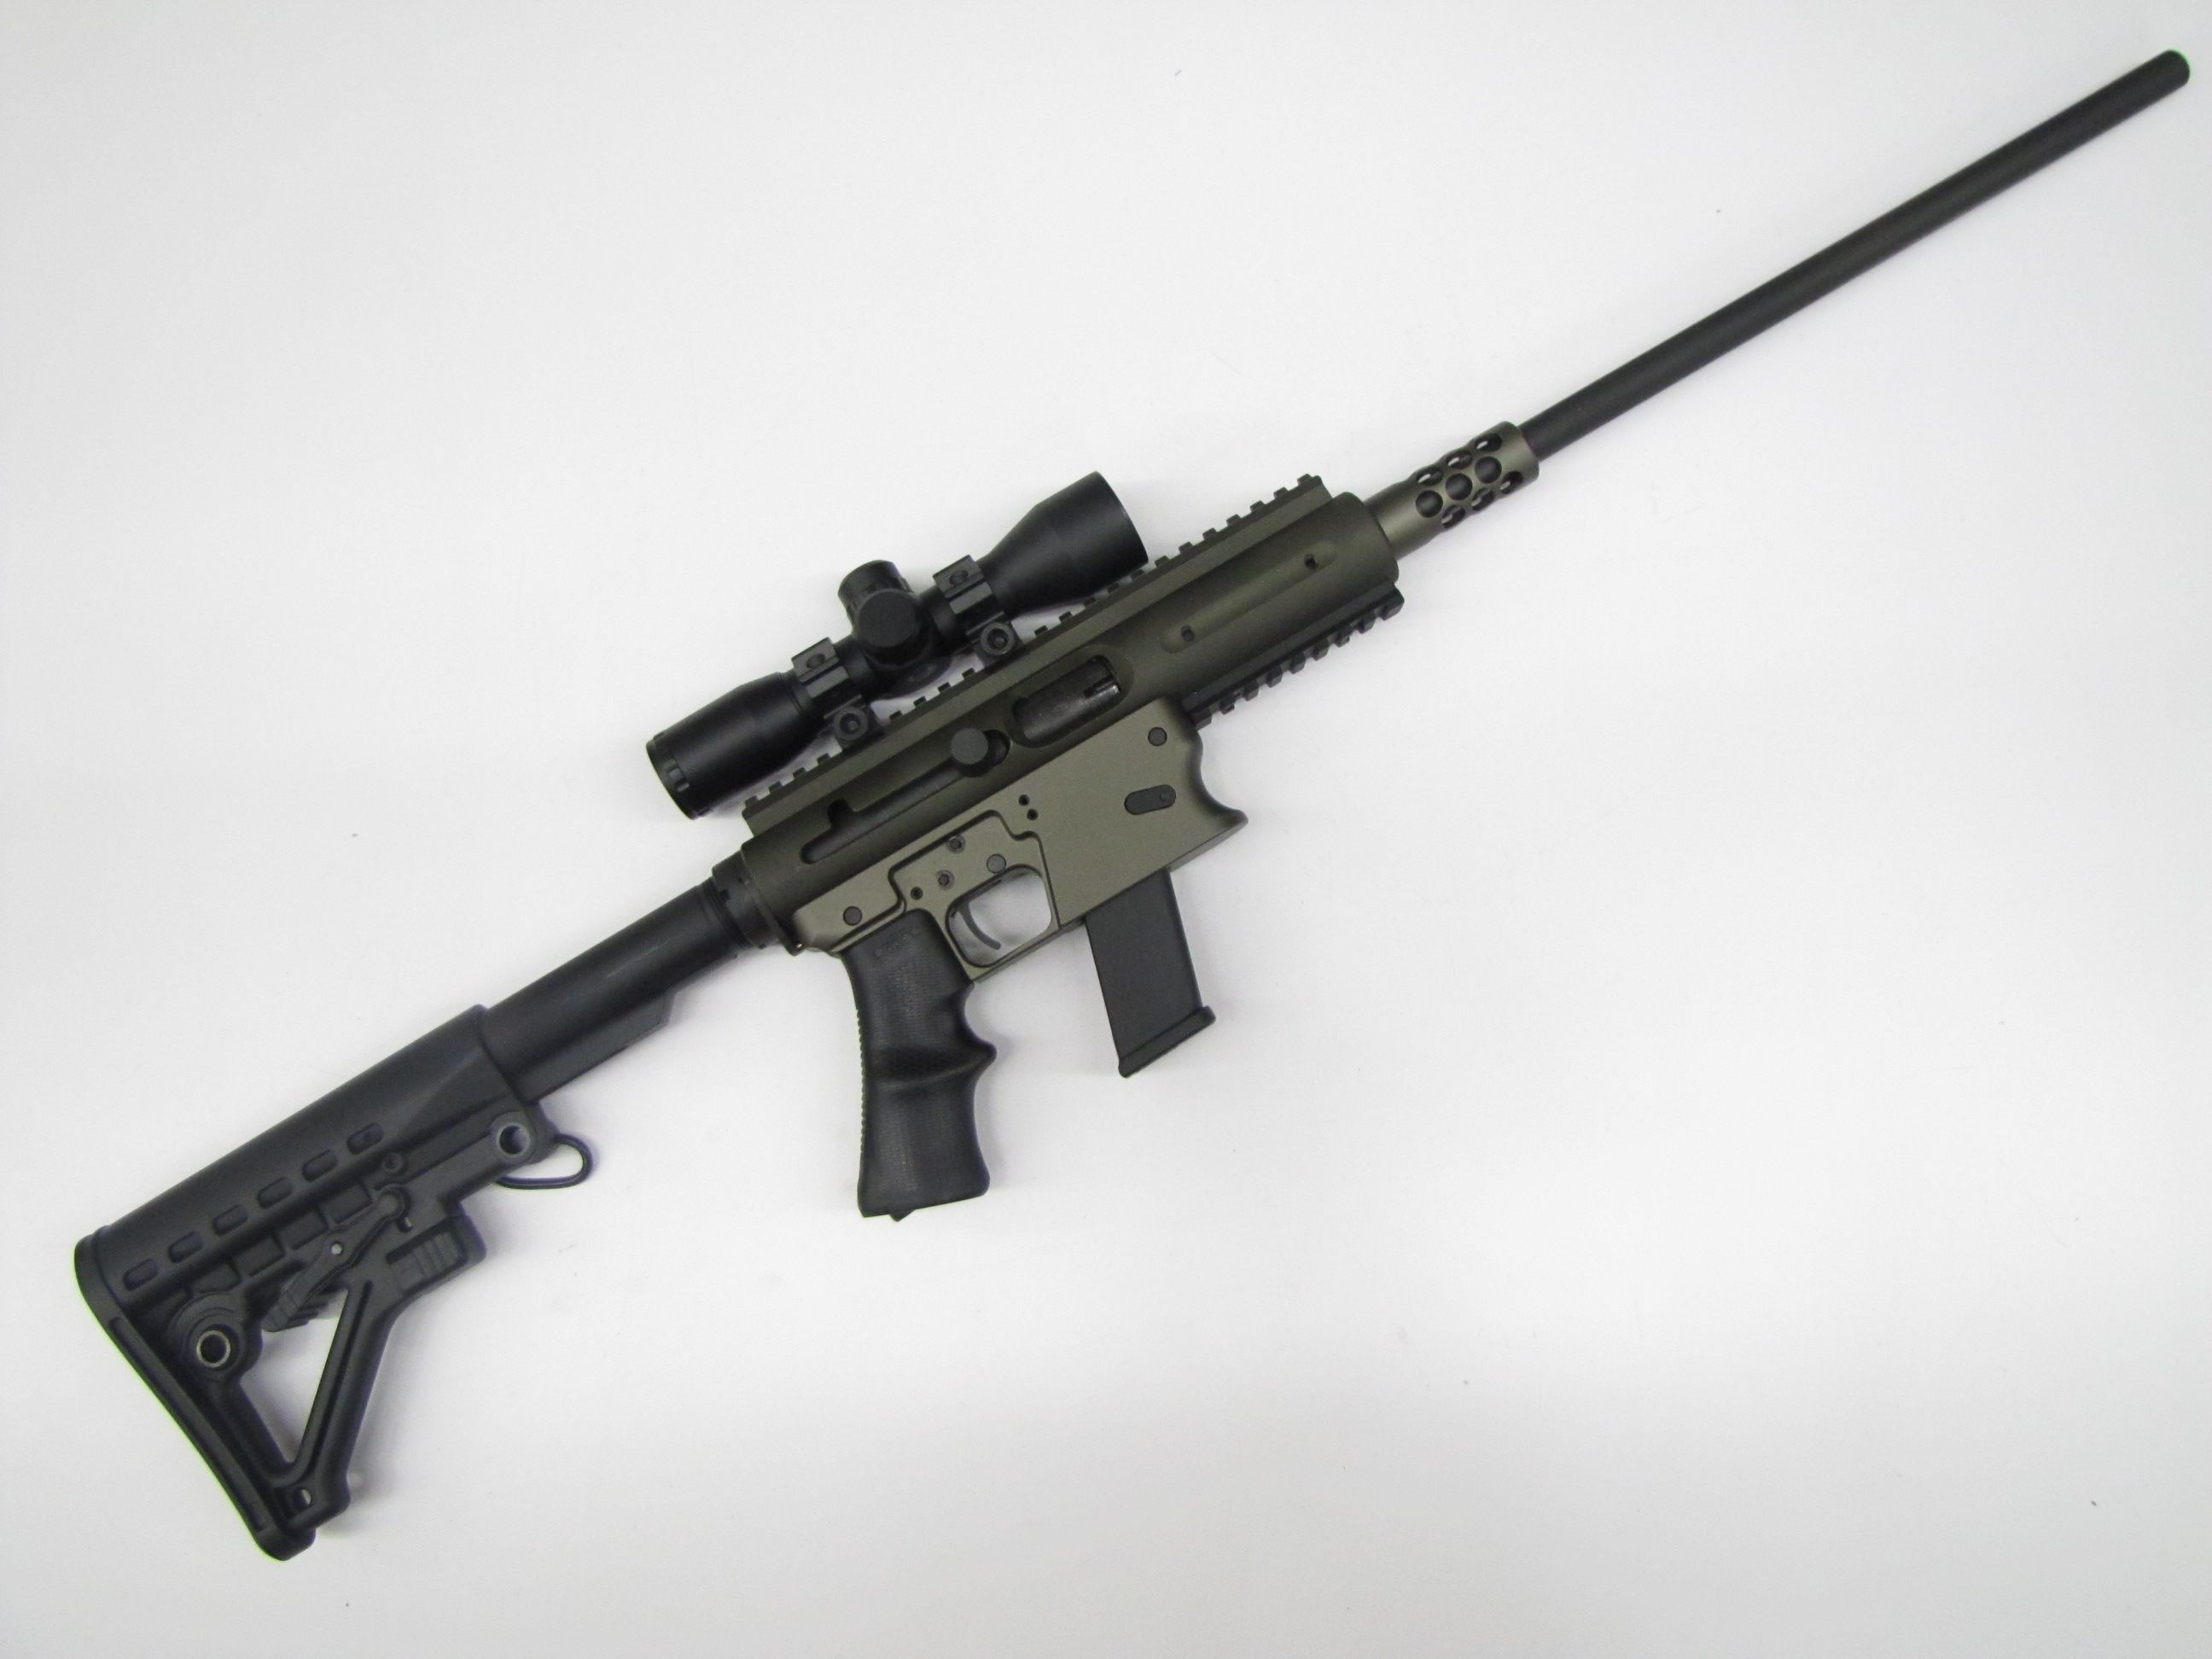 Aero Survival Rifle (ASR) in 9mm by TNW, Olive Drab , Non